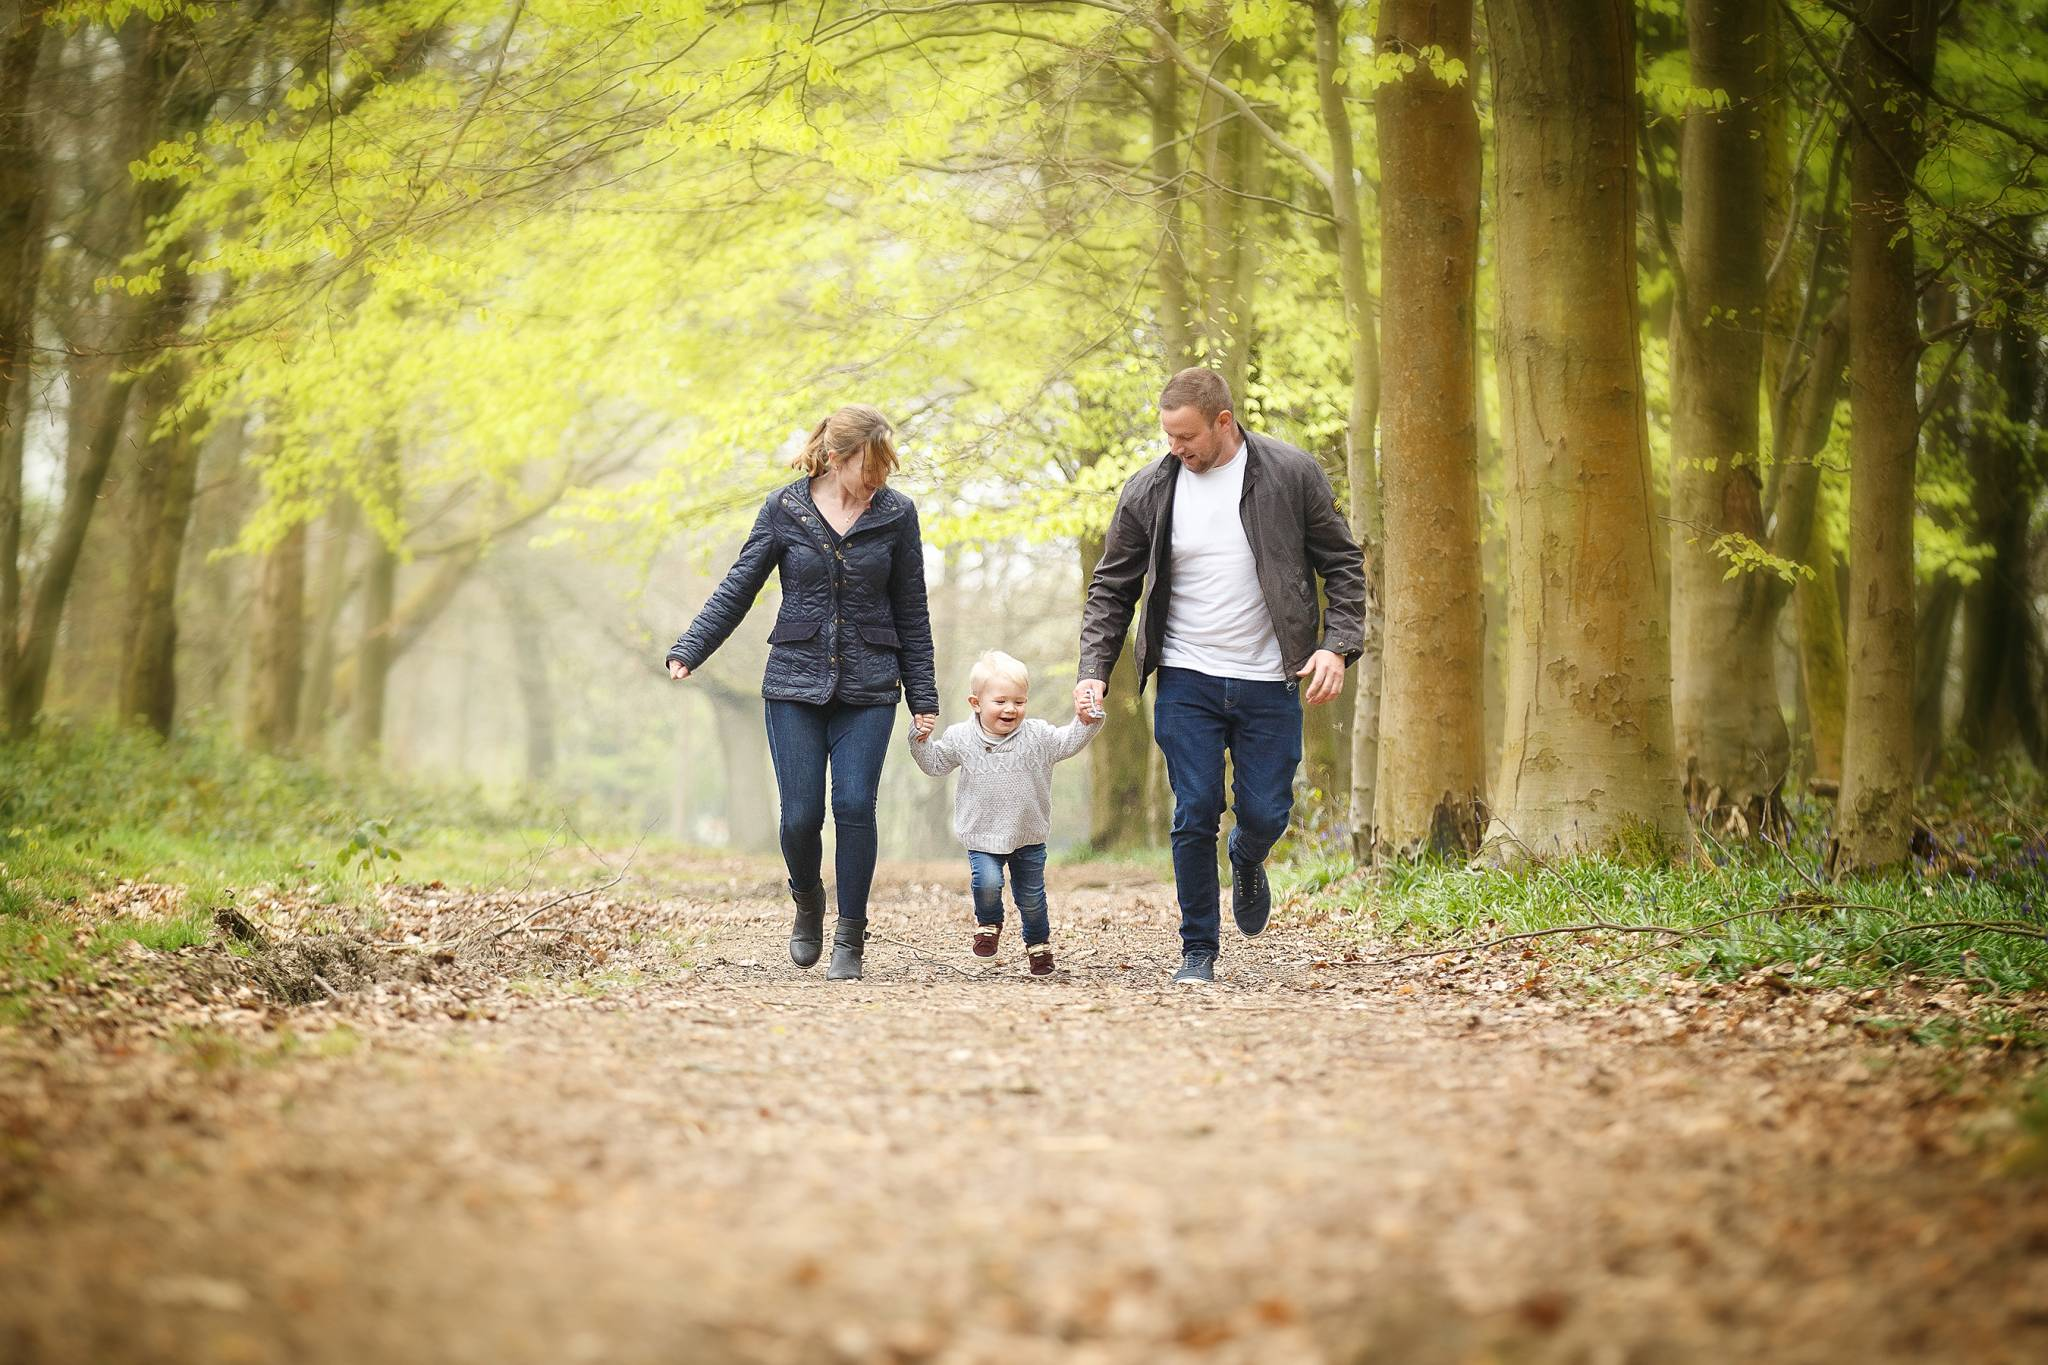 Location Photoshoot, family photoshoot, children photoshoot, high wycombe, buckinghamshire